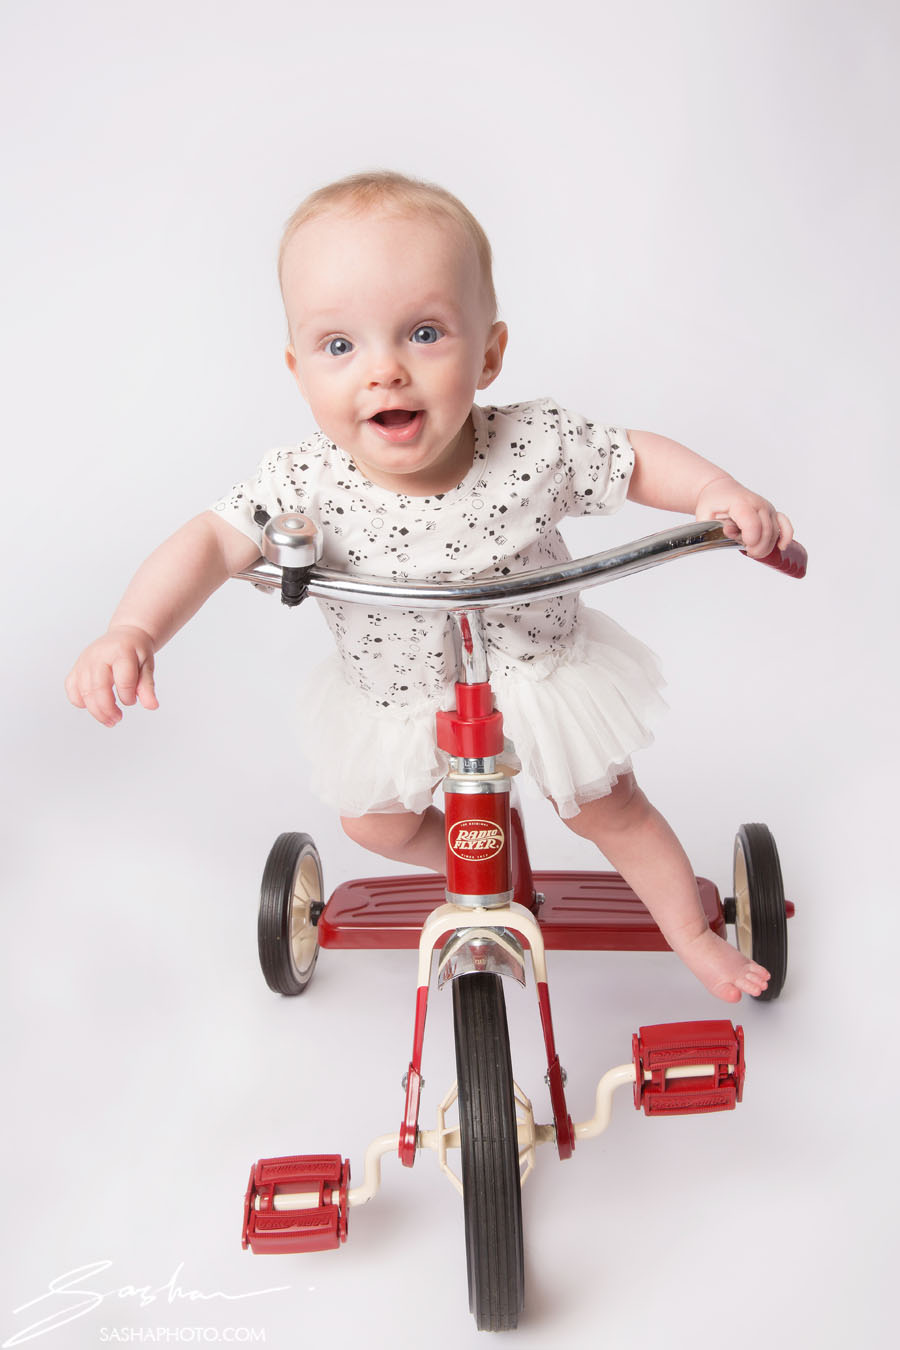 baby on red tricycle